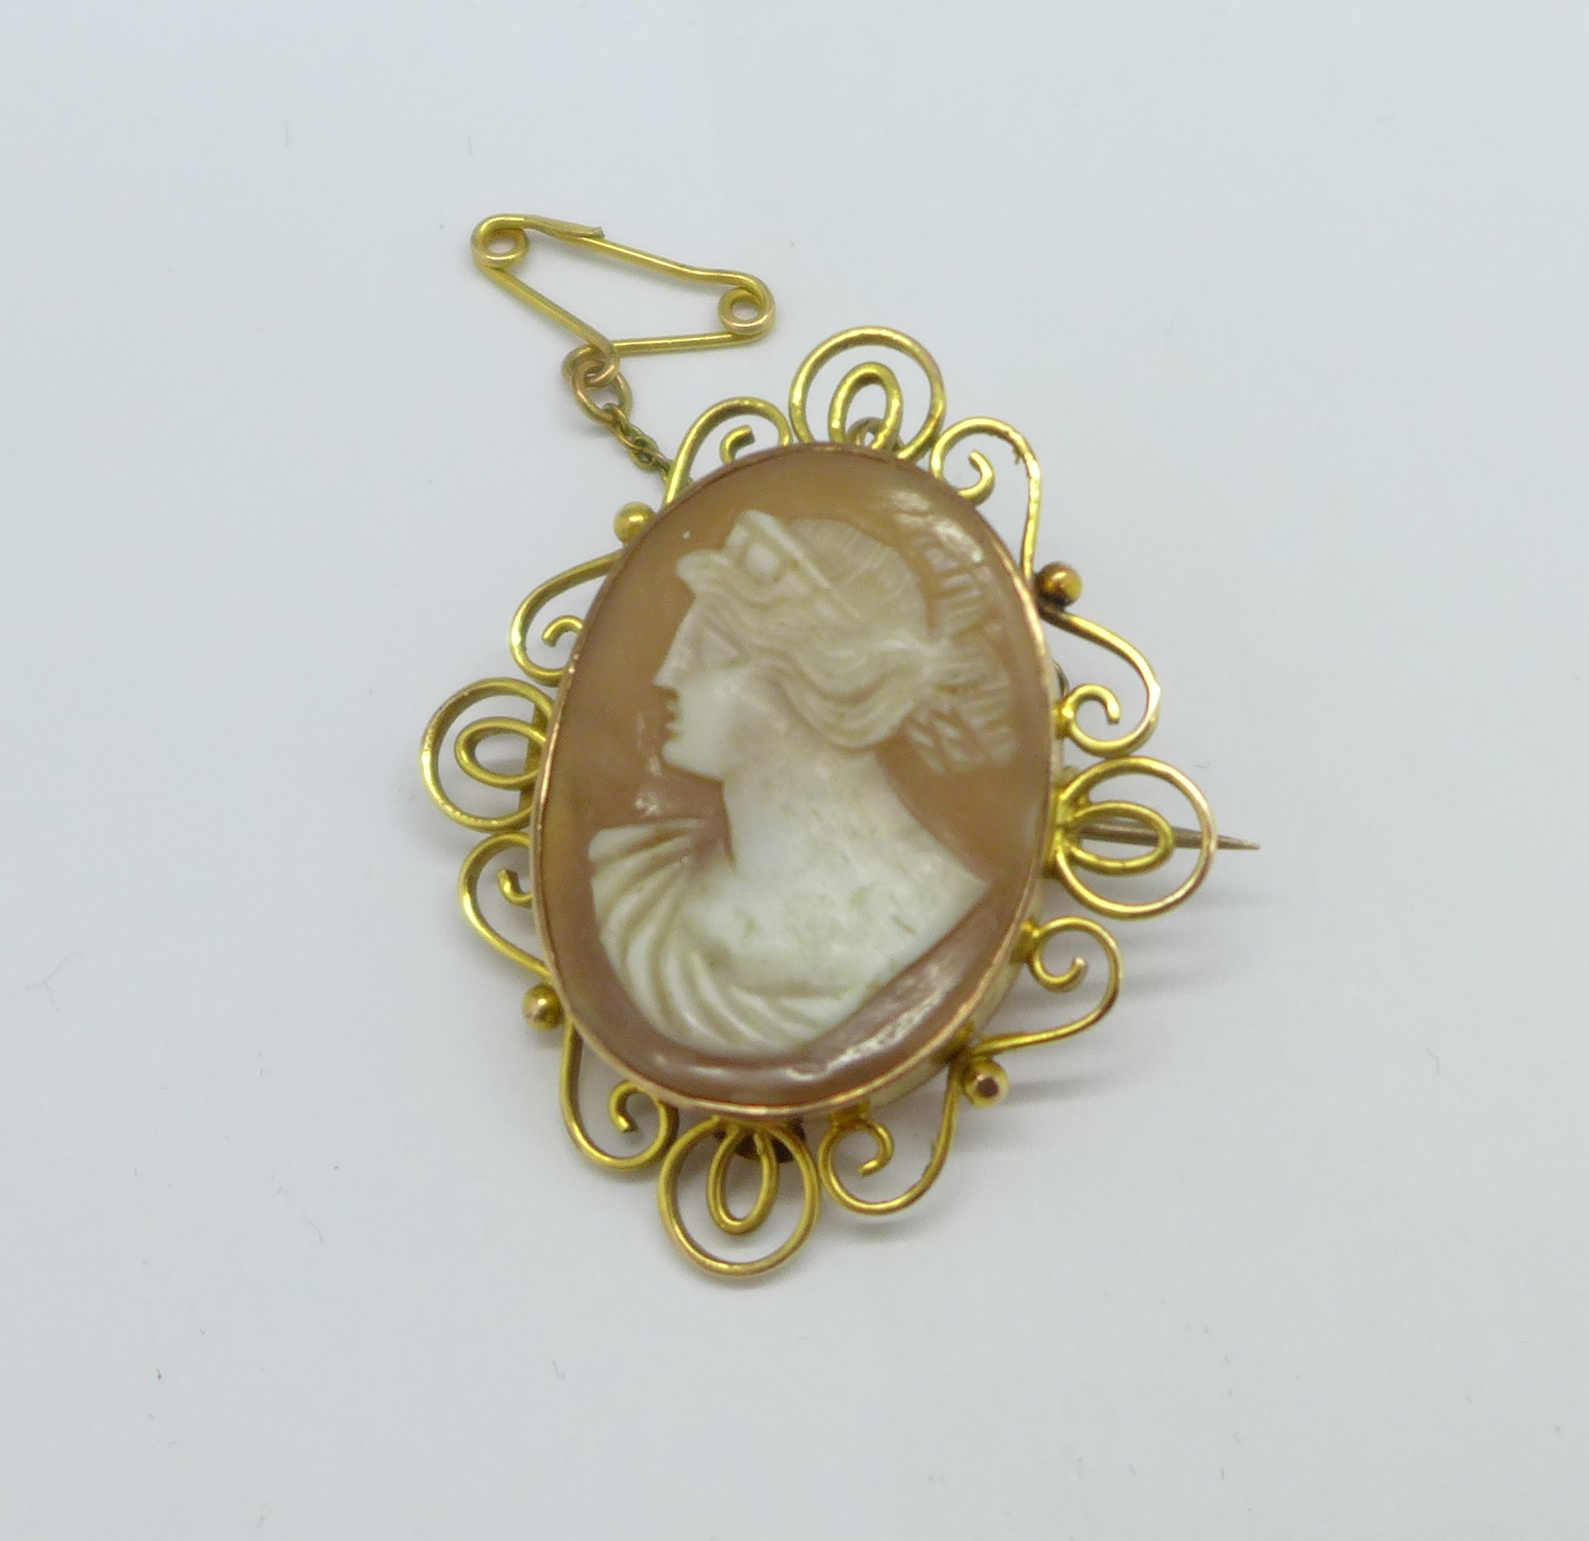 A 9ct gold cameo brooch, 5.6g